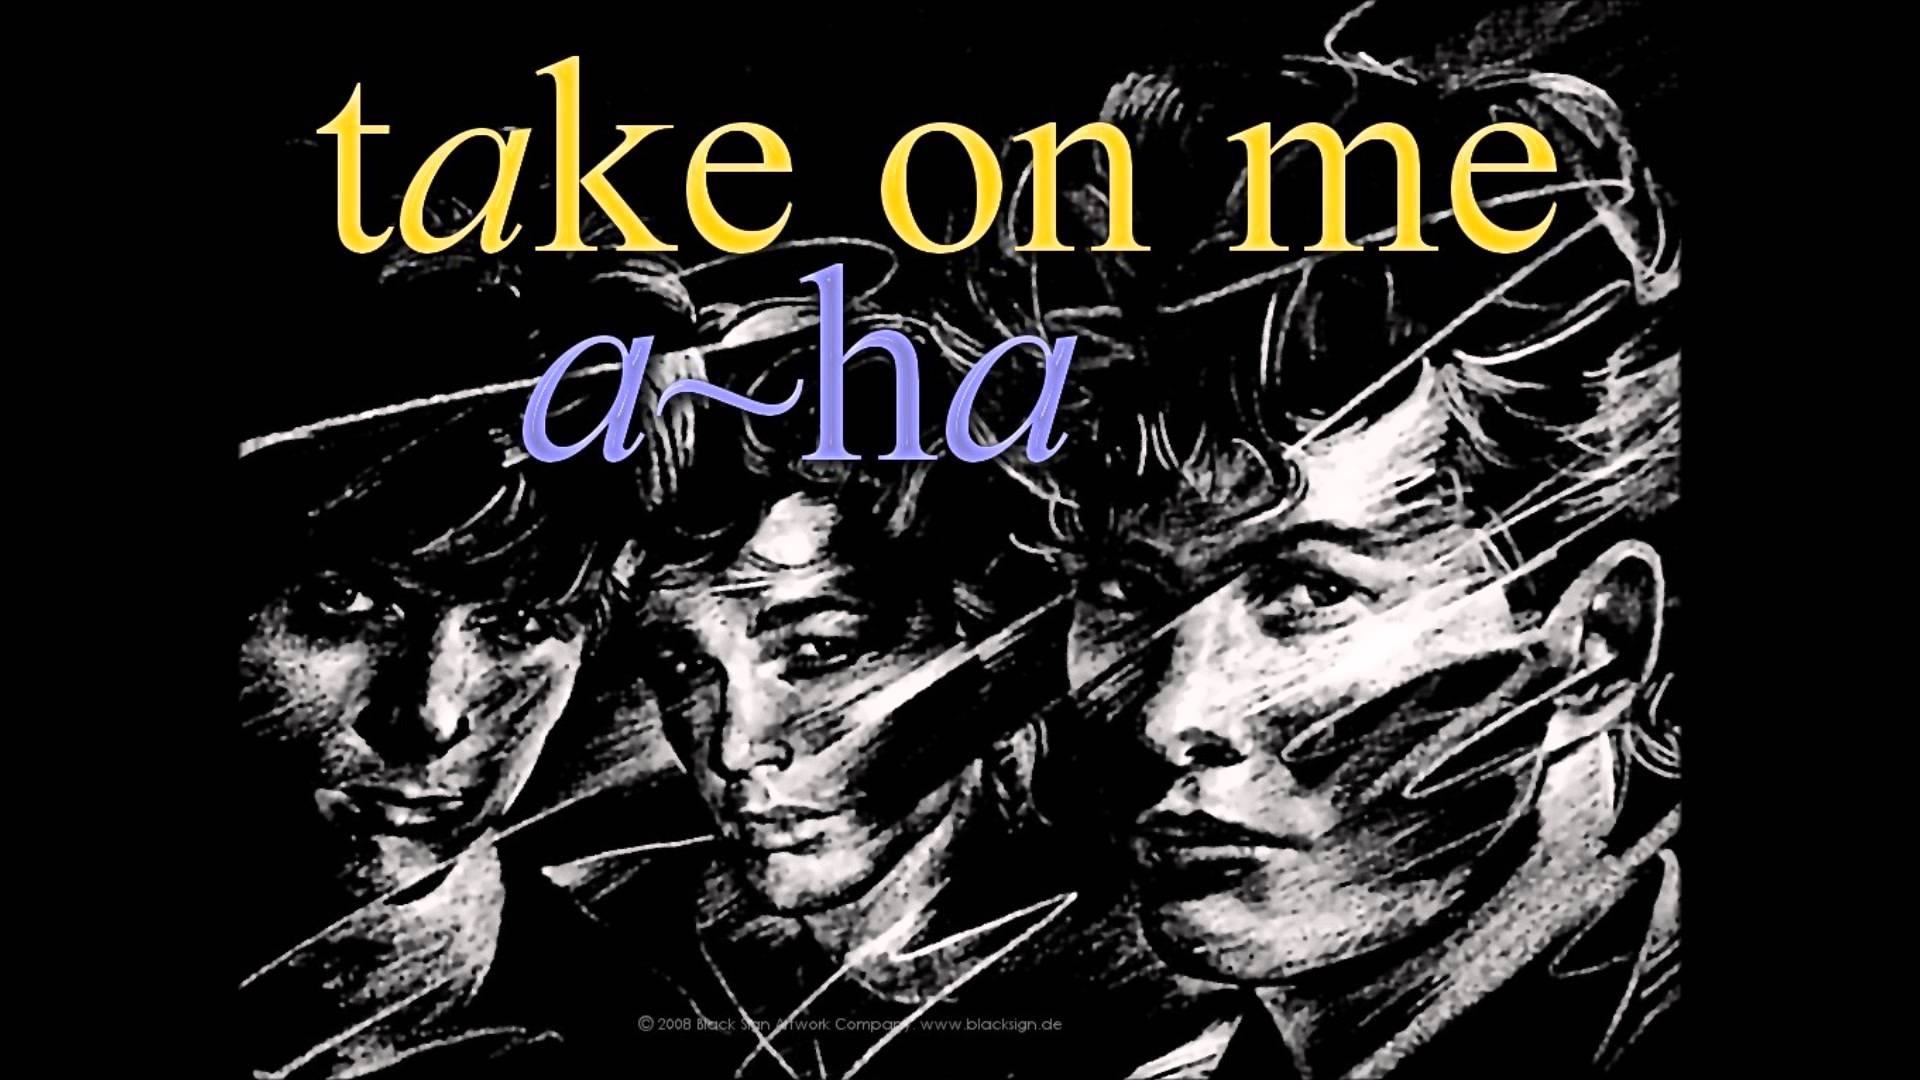 A-ha - Take On Me (2016)